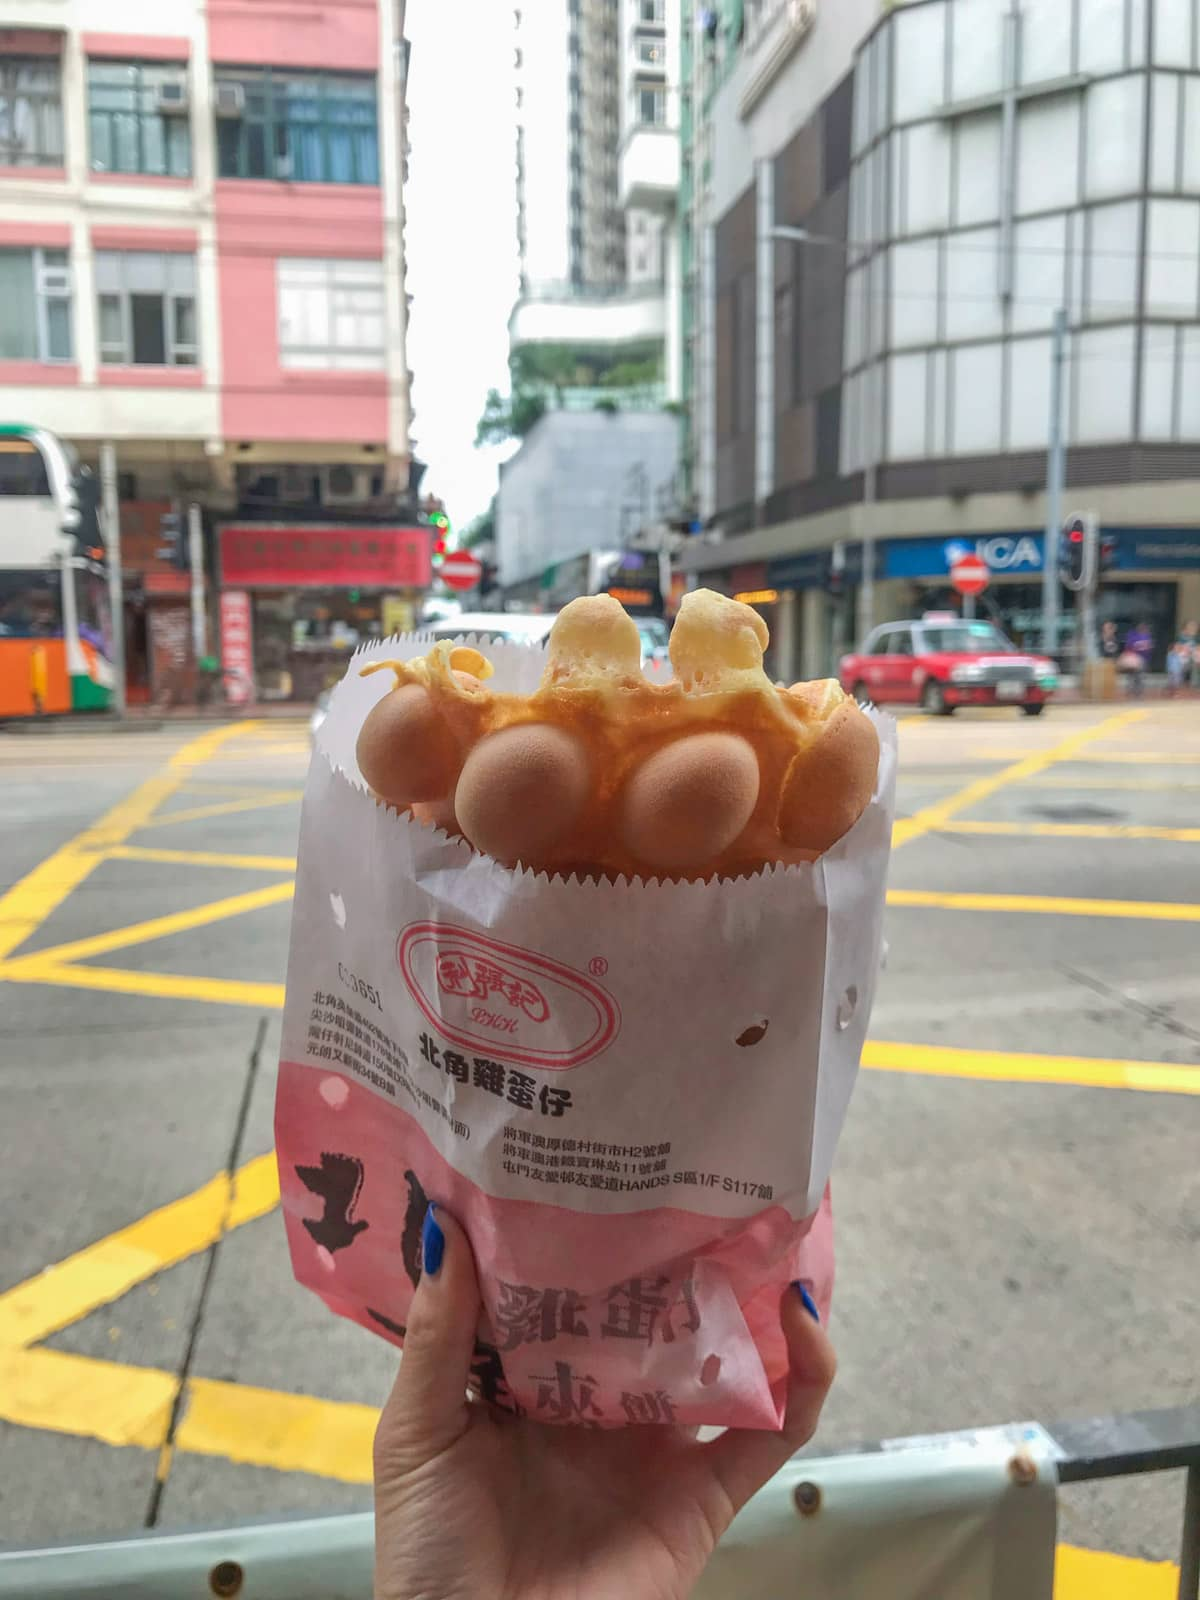 A woman's hand holding a paper bag with a Hong Kong style egg waffle in it, having the texture of hemispheres